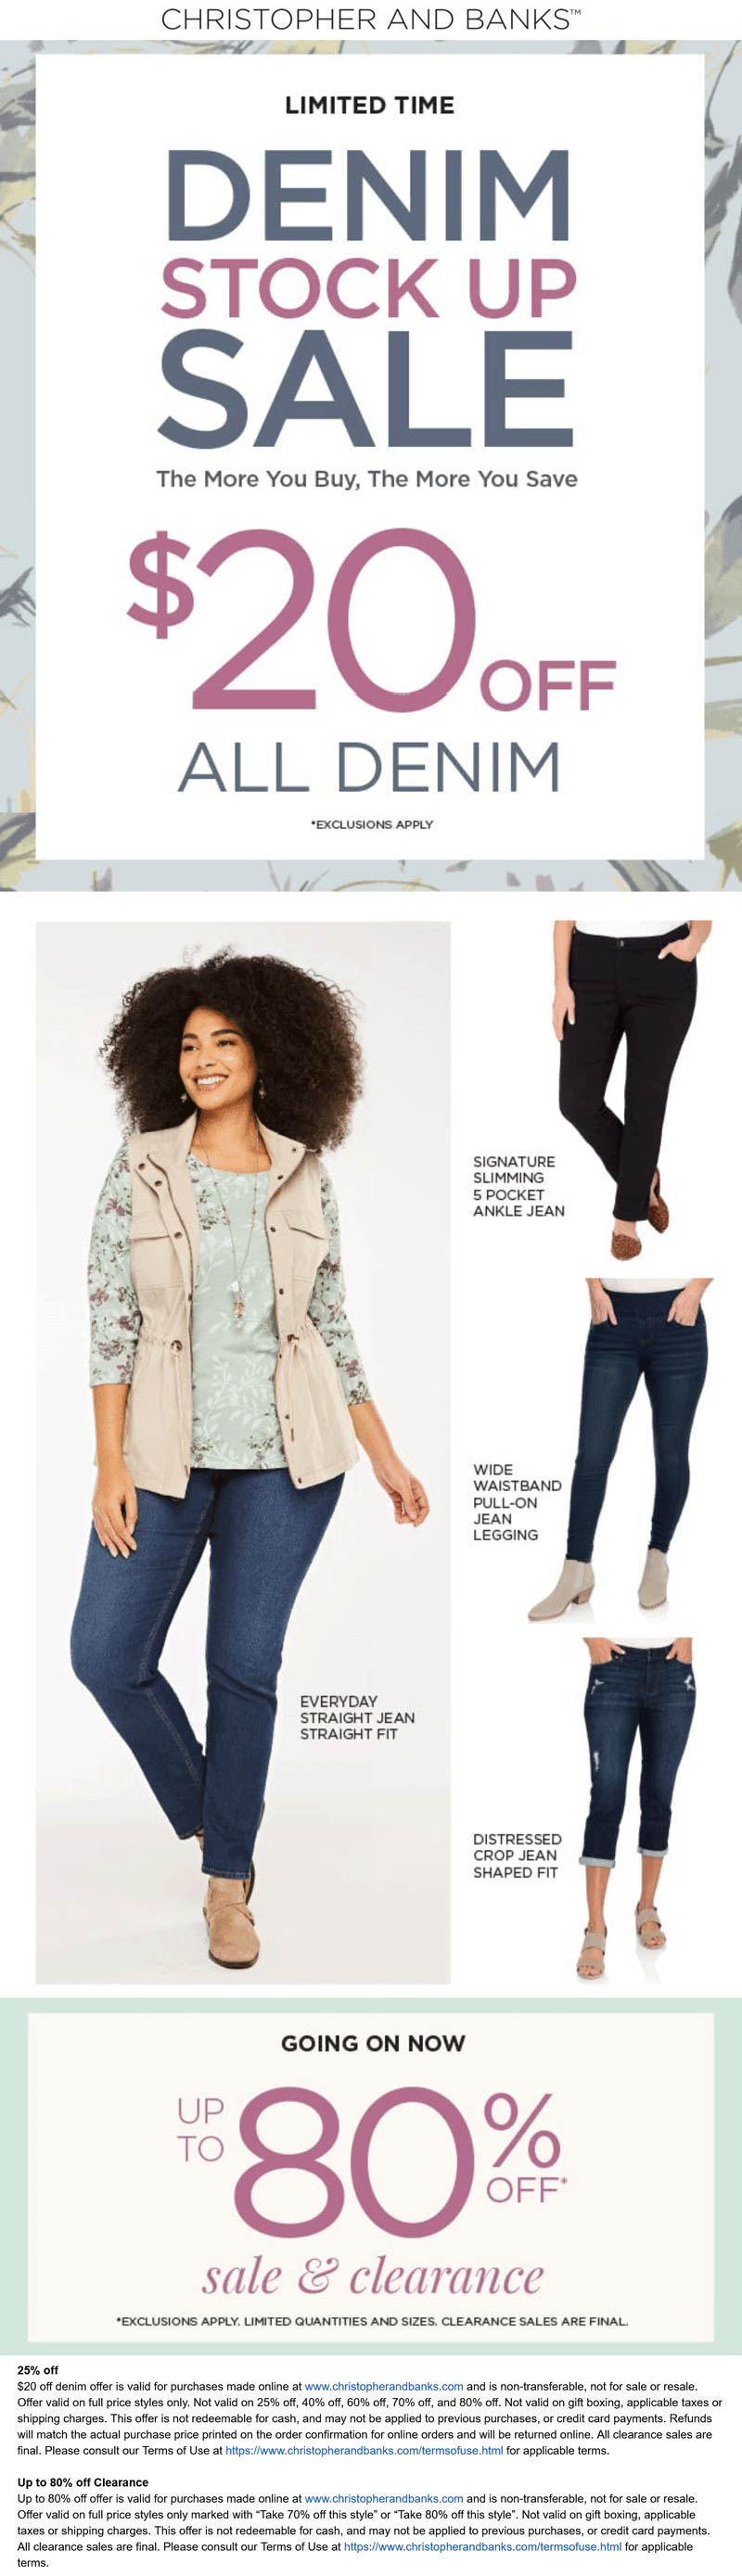 Christopher and Banks stores Coupon  $20 off all denim & more at Christopher and Banks #christopherandbanks